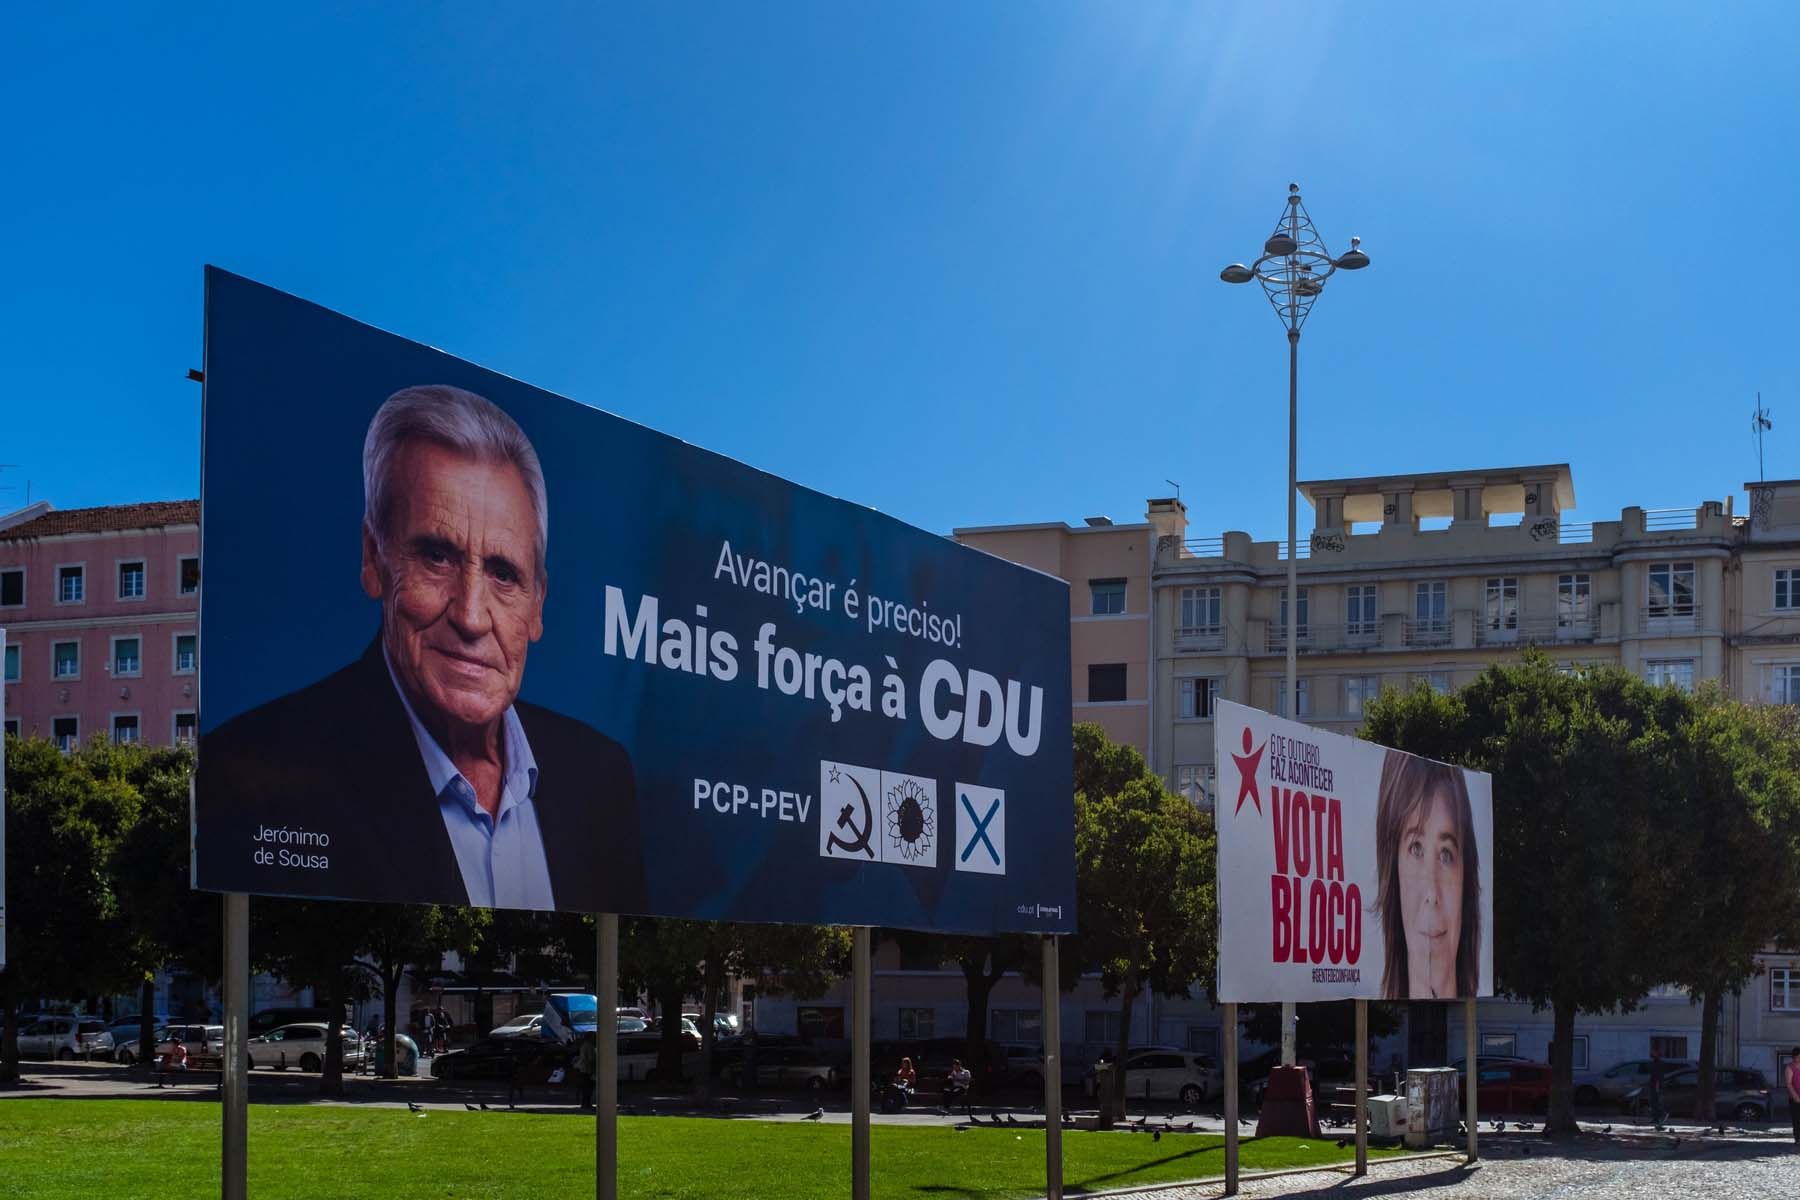 Portuguese election posters